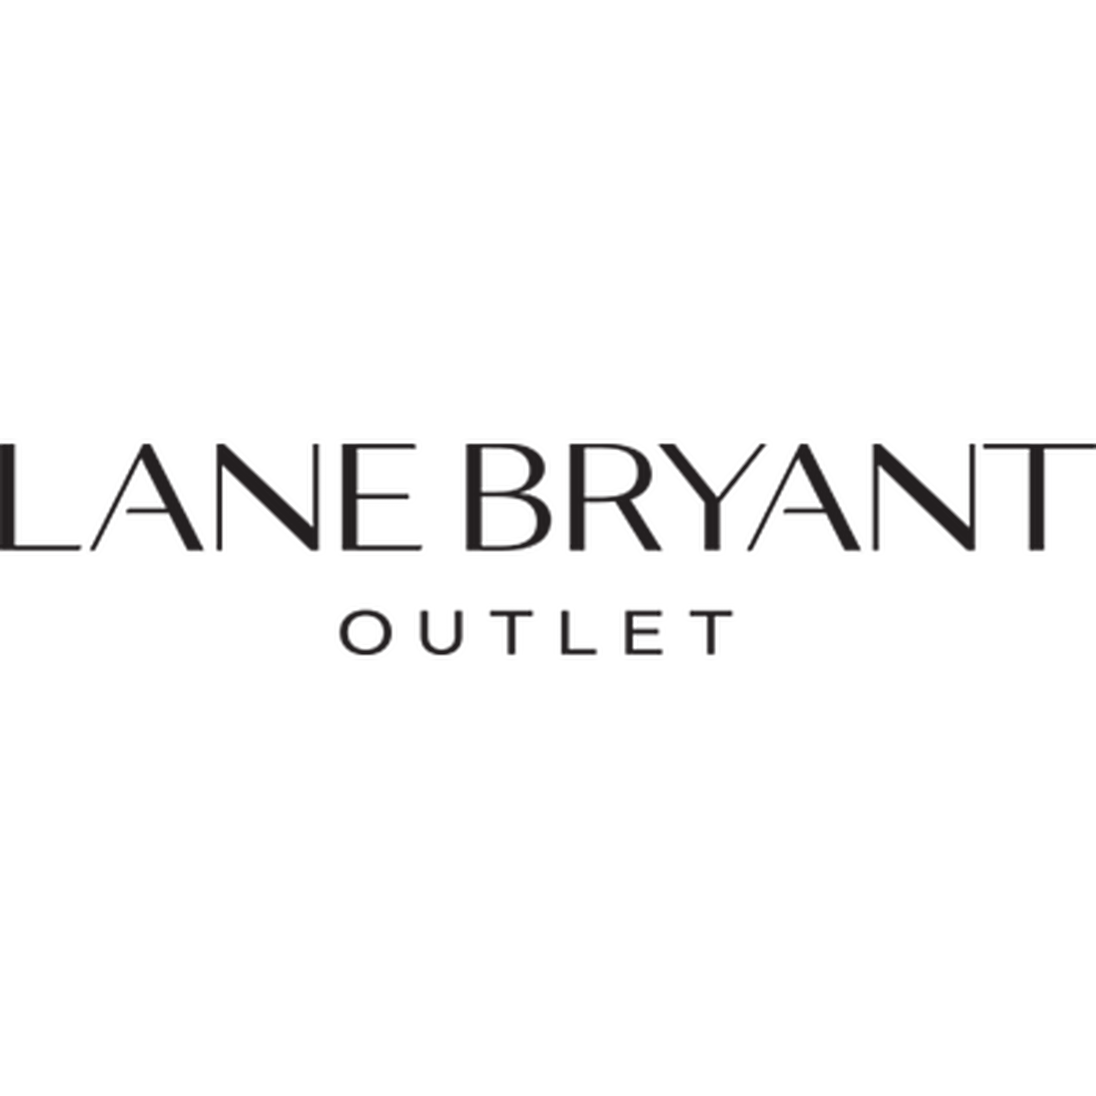 Lane Bryant Outlet image 0